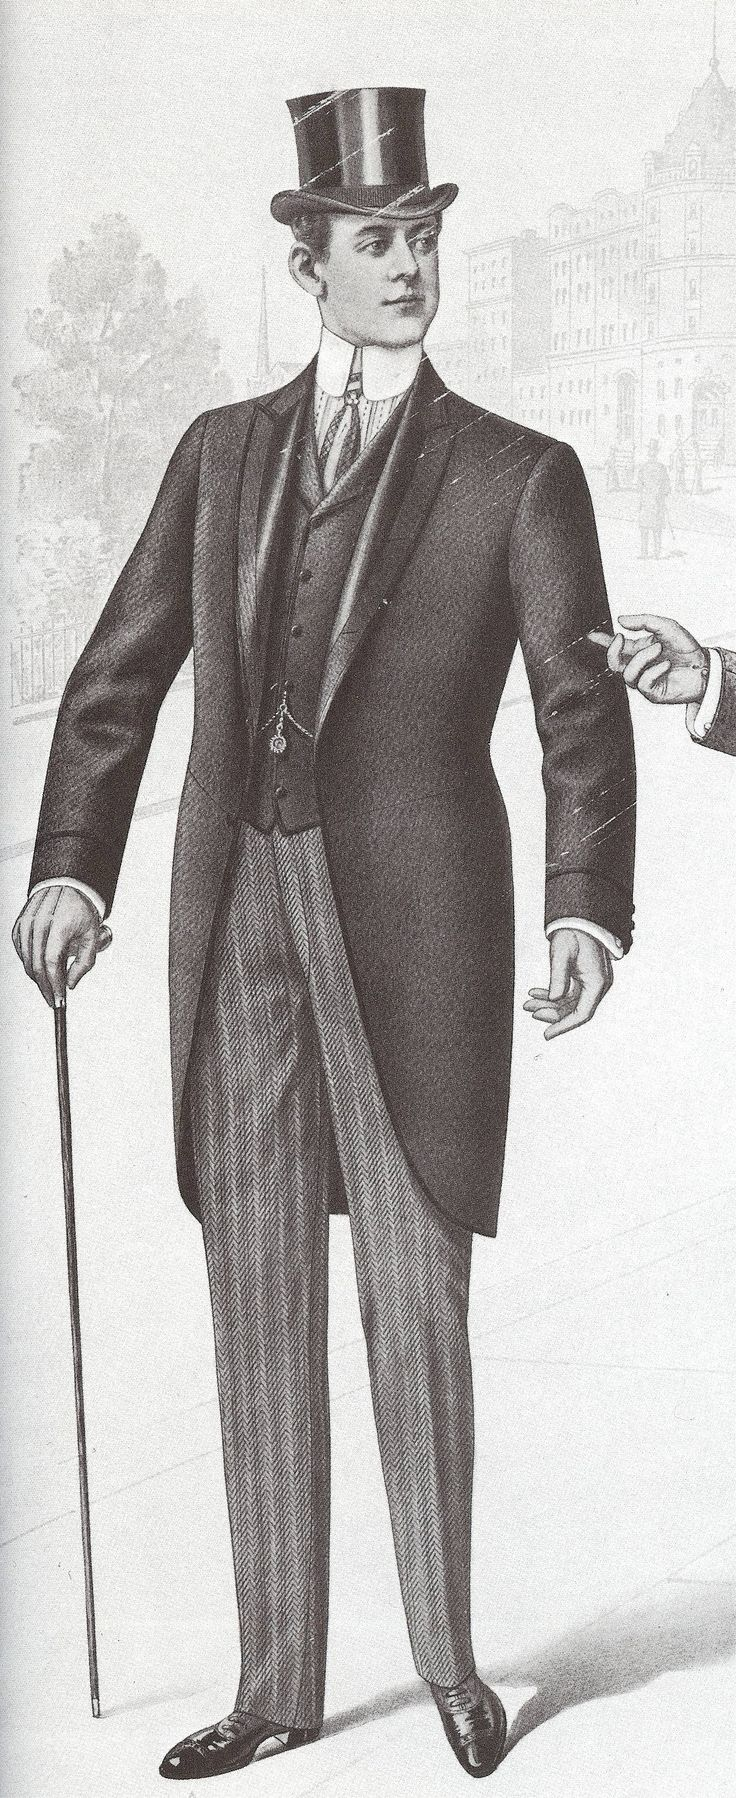 1907-1908 Men started to wear more fitting suits and their morning jacket was a cutaway style. (Sydney S.)